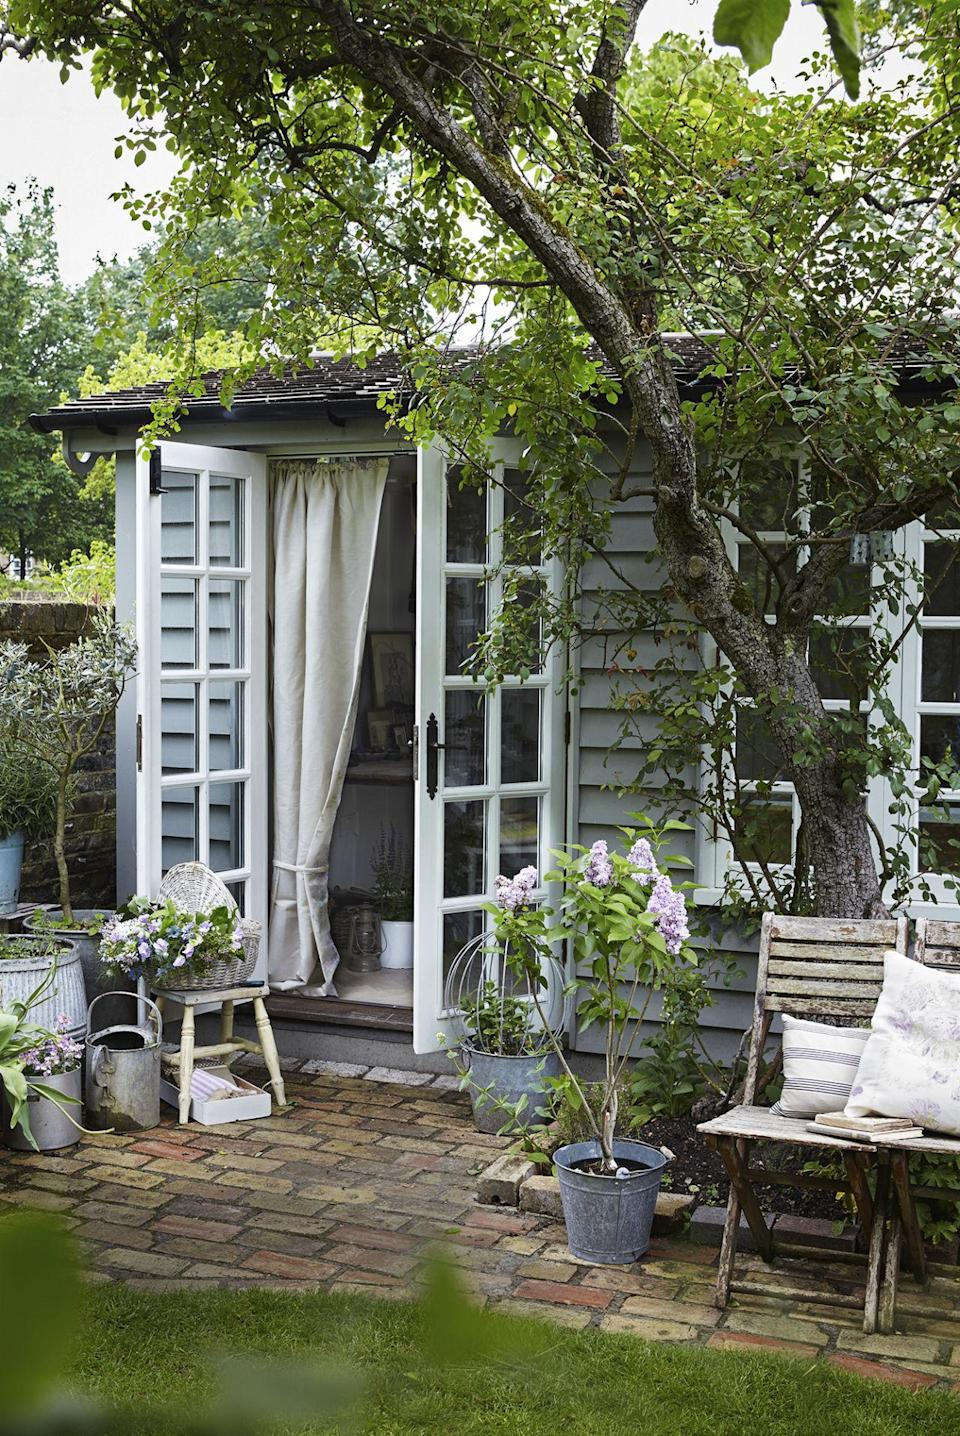 <p>Traditional wooden cladding in a subtle blue-grey brings rustic charm to this pretty garden studio, which serves as an extra room. </p>